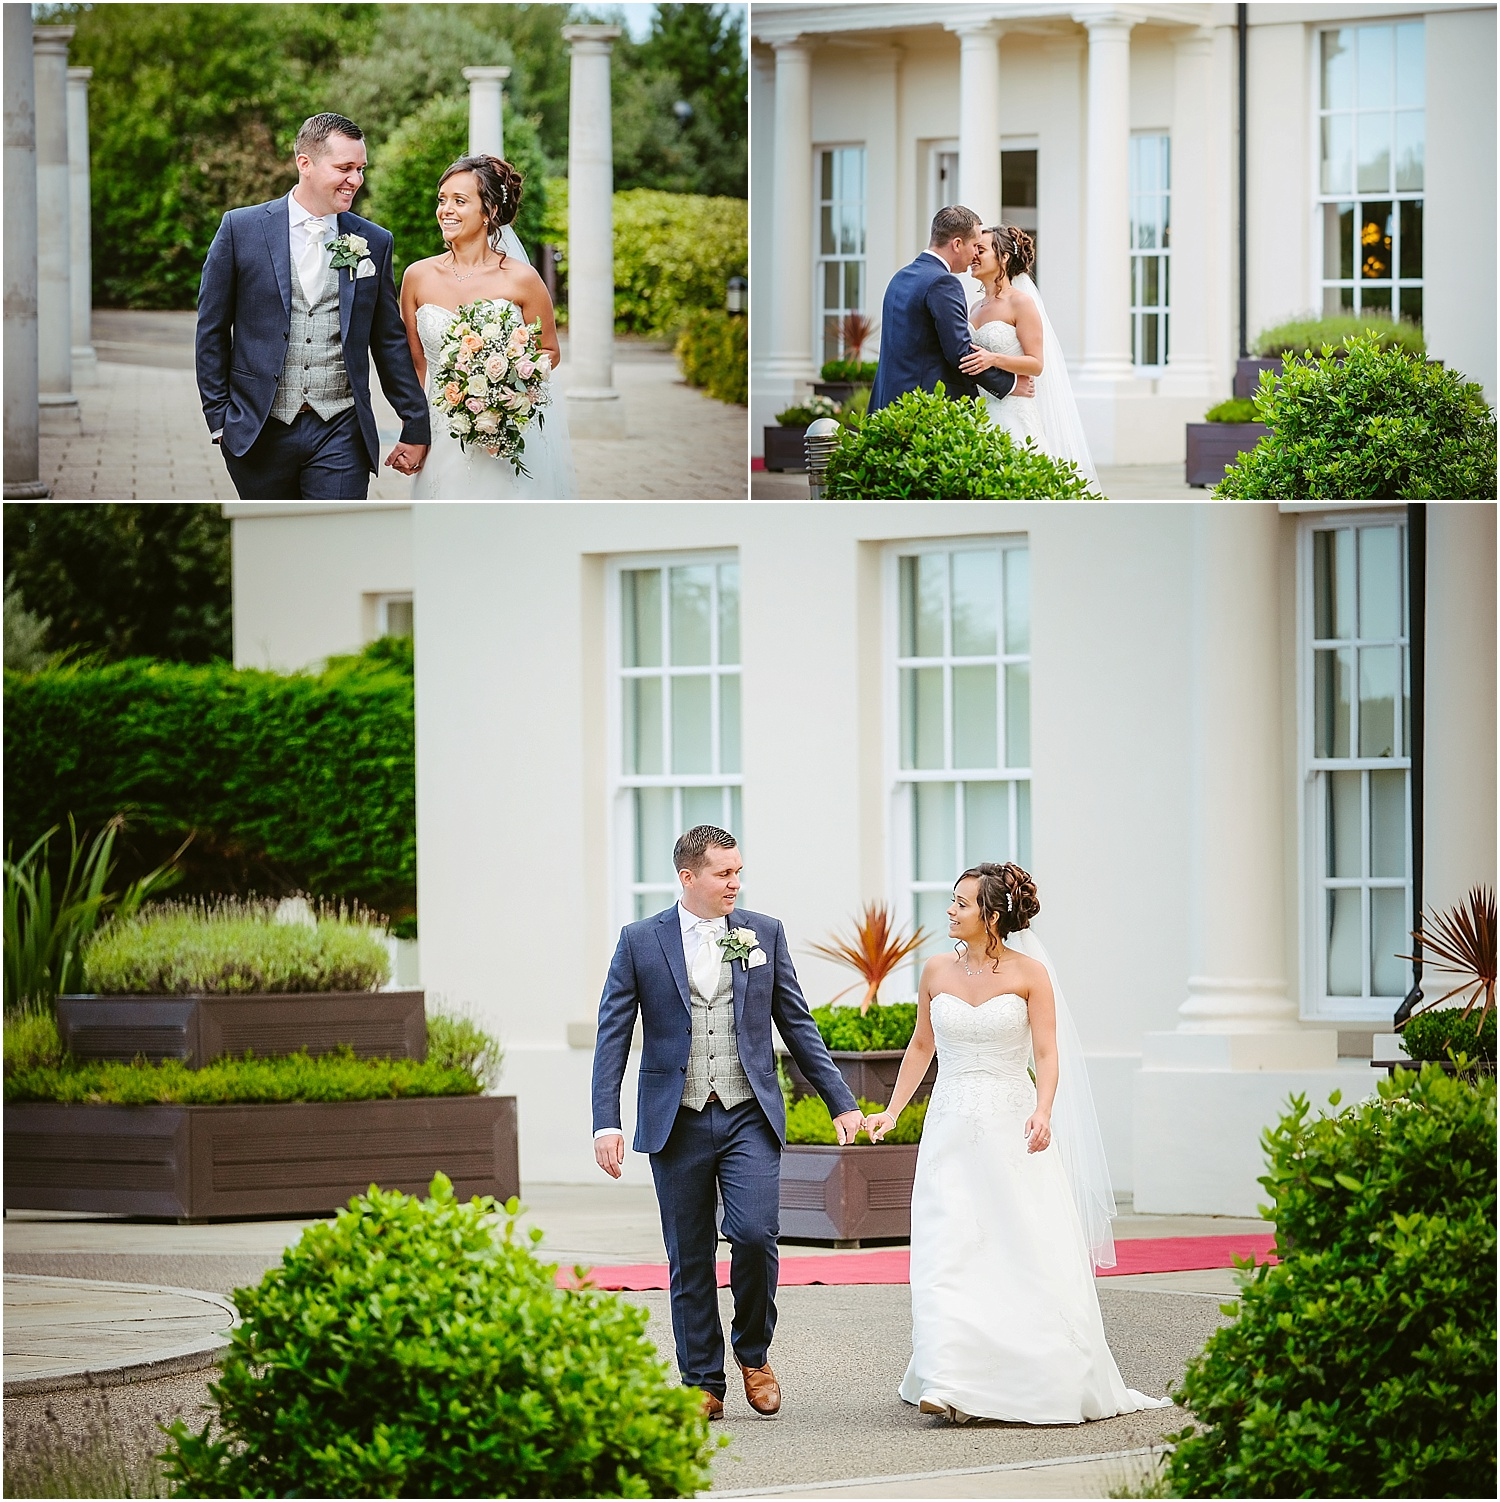 Wedding at Seaham Hall - wedding photography by www.2tonephotography.co.uk 058.jpg